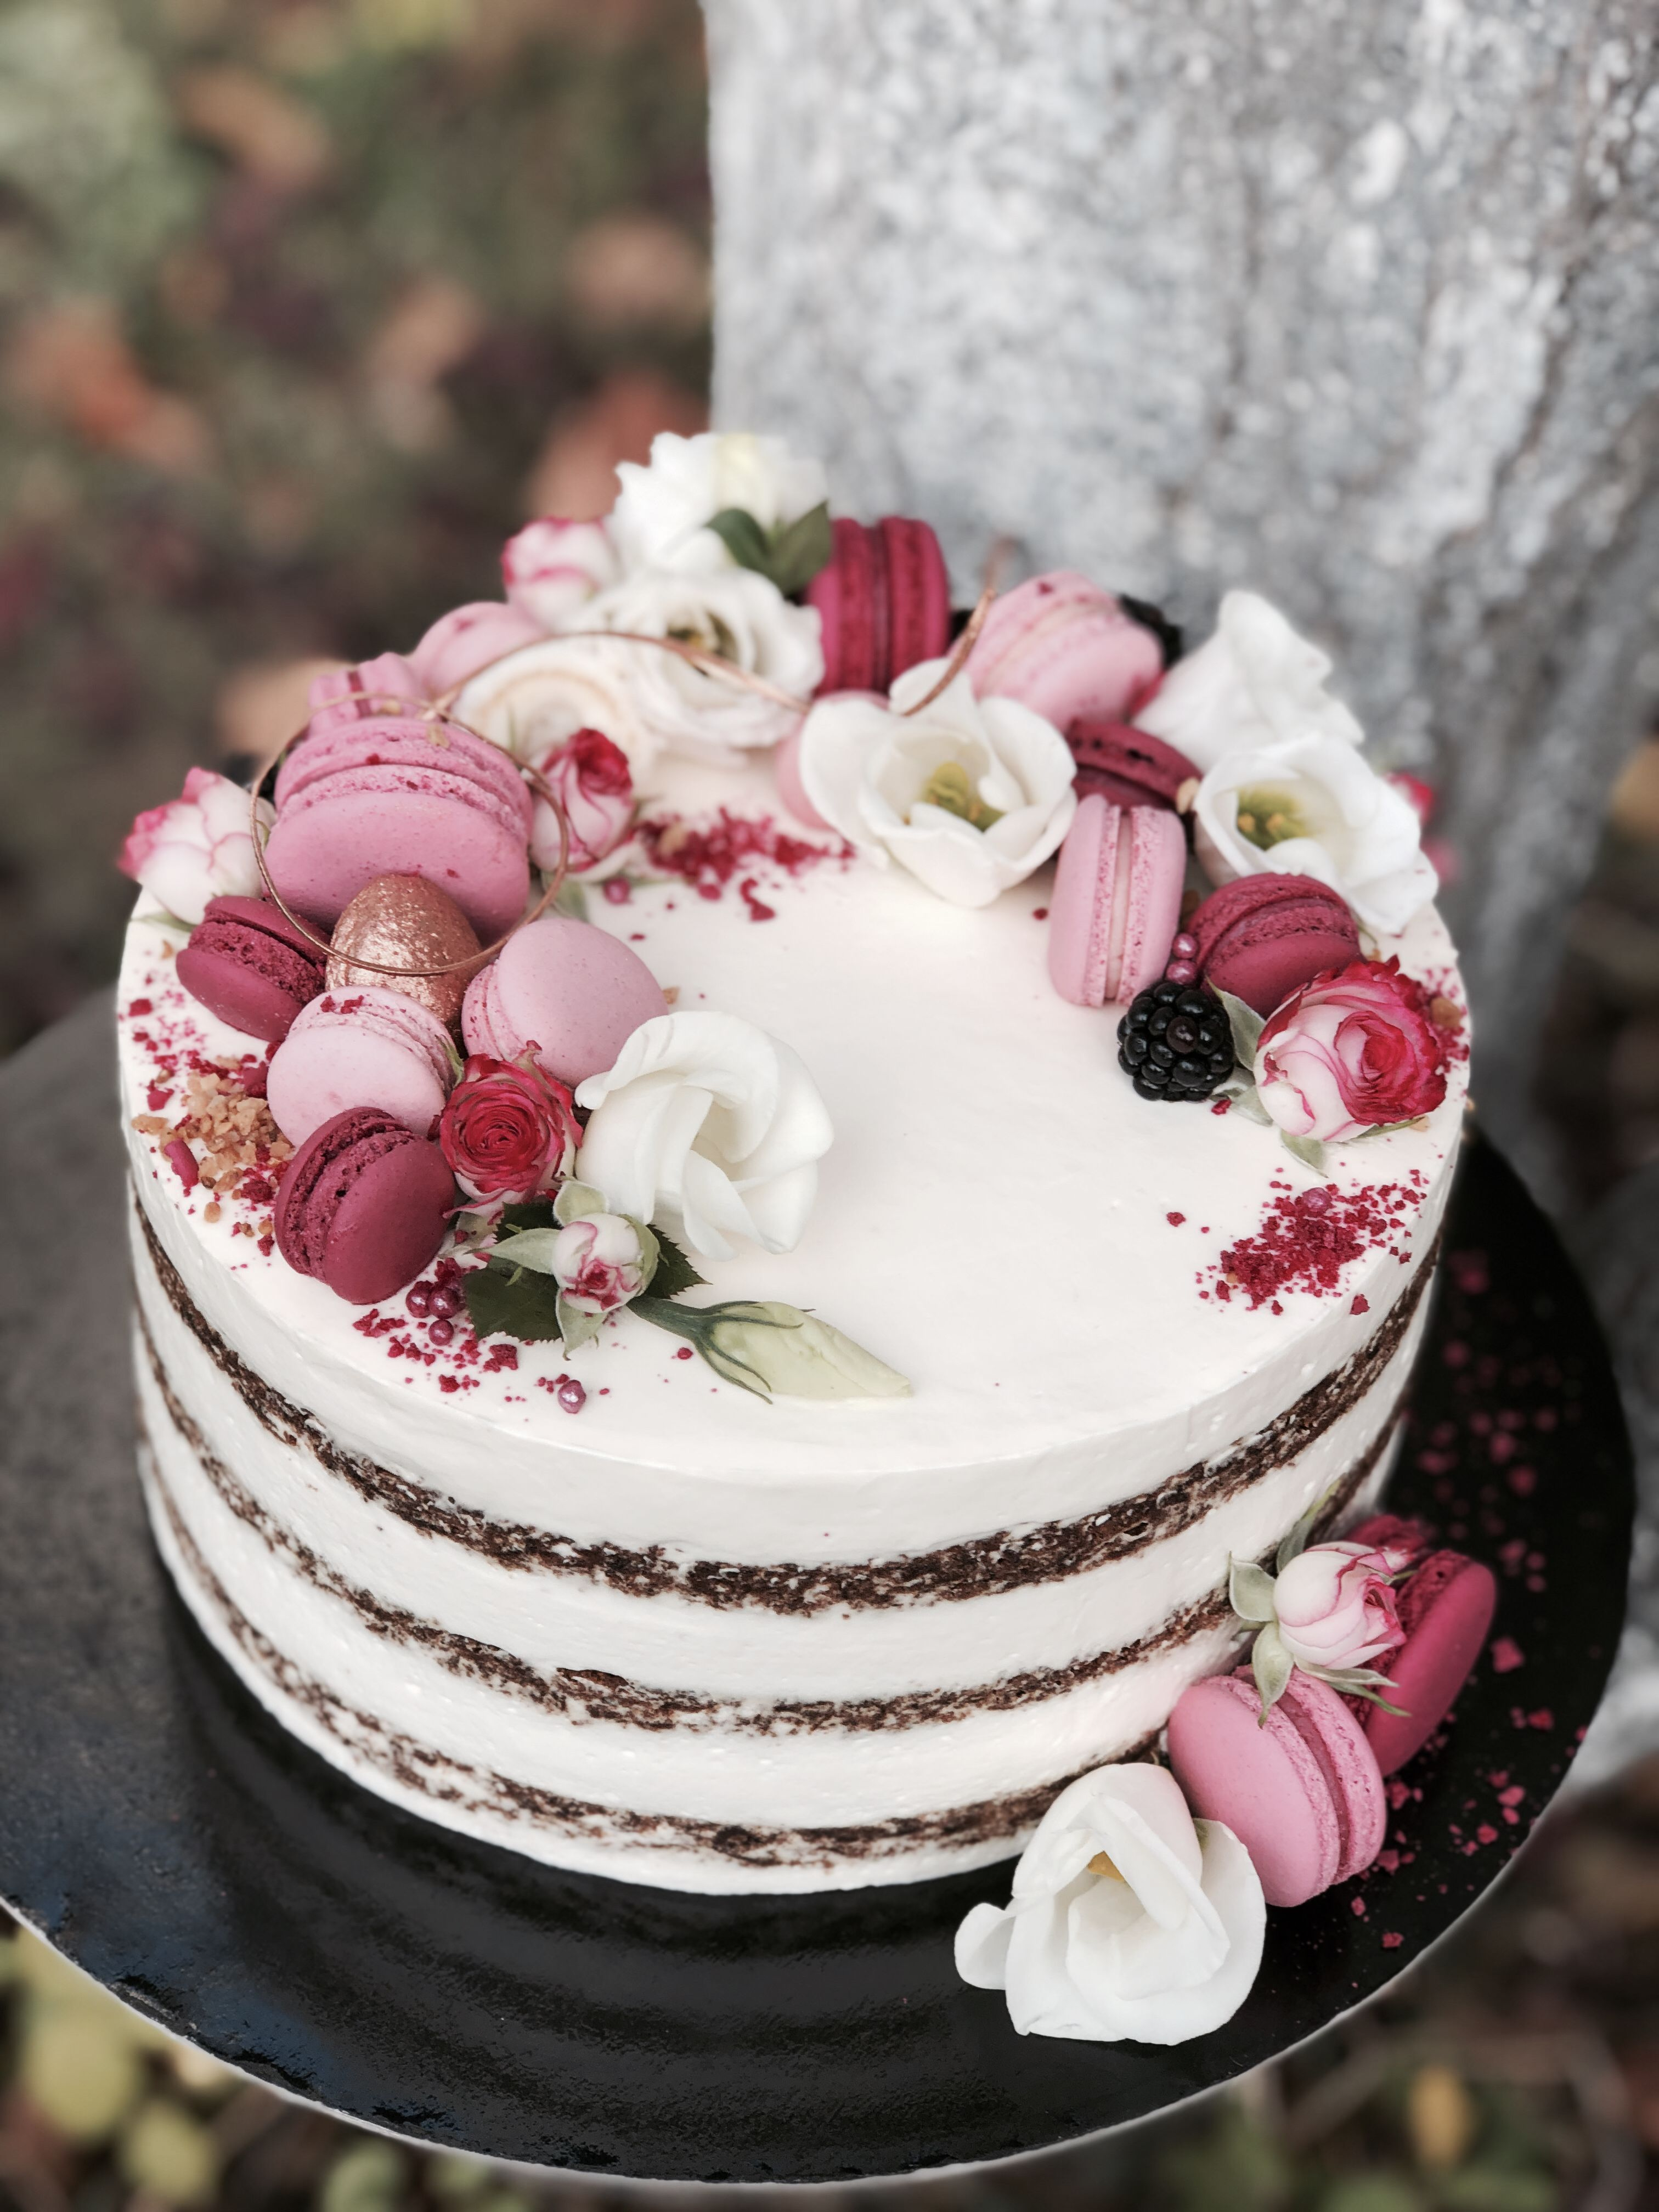 Pin on Cakes by Macarons Boutique